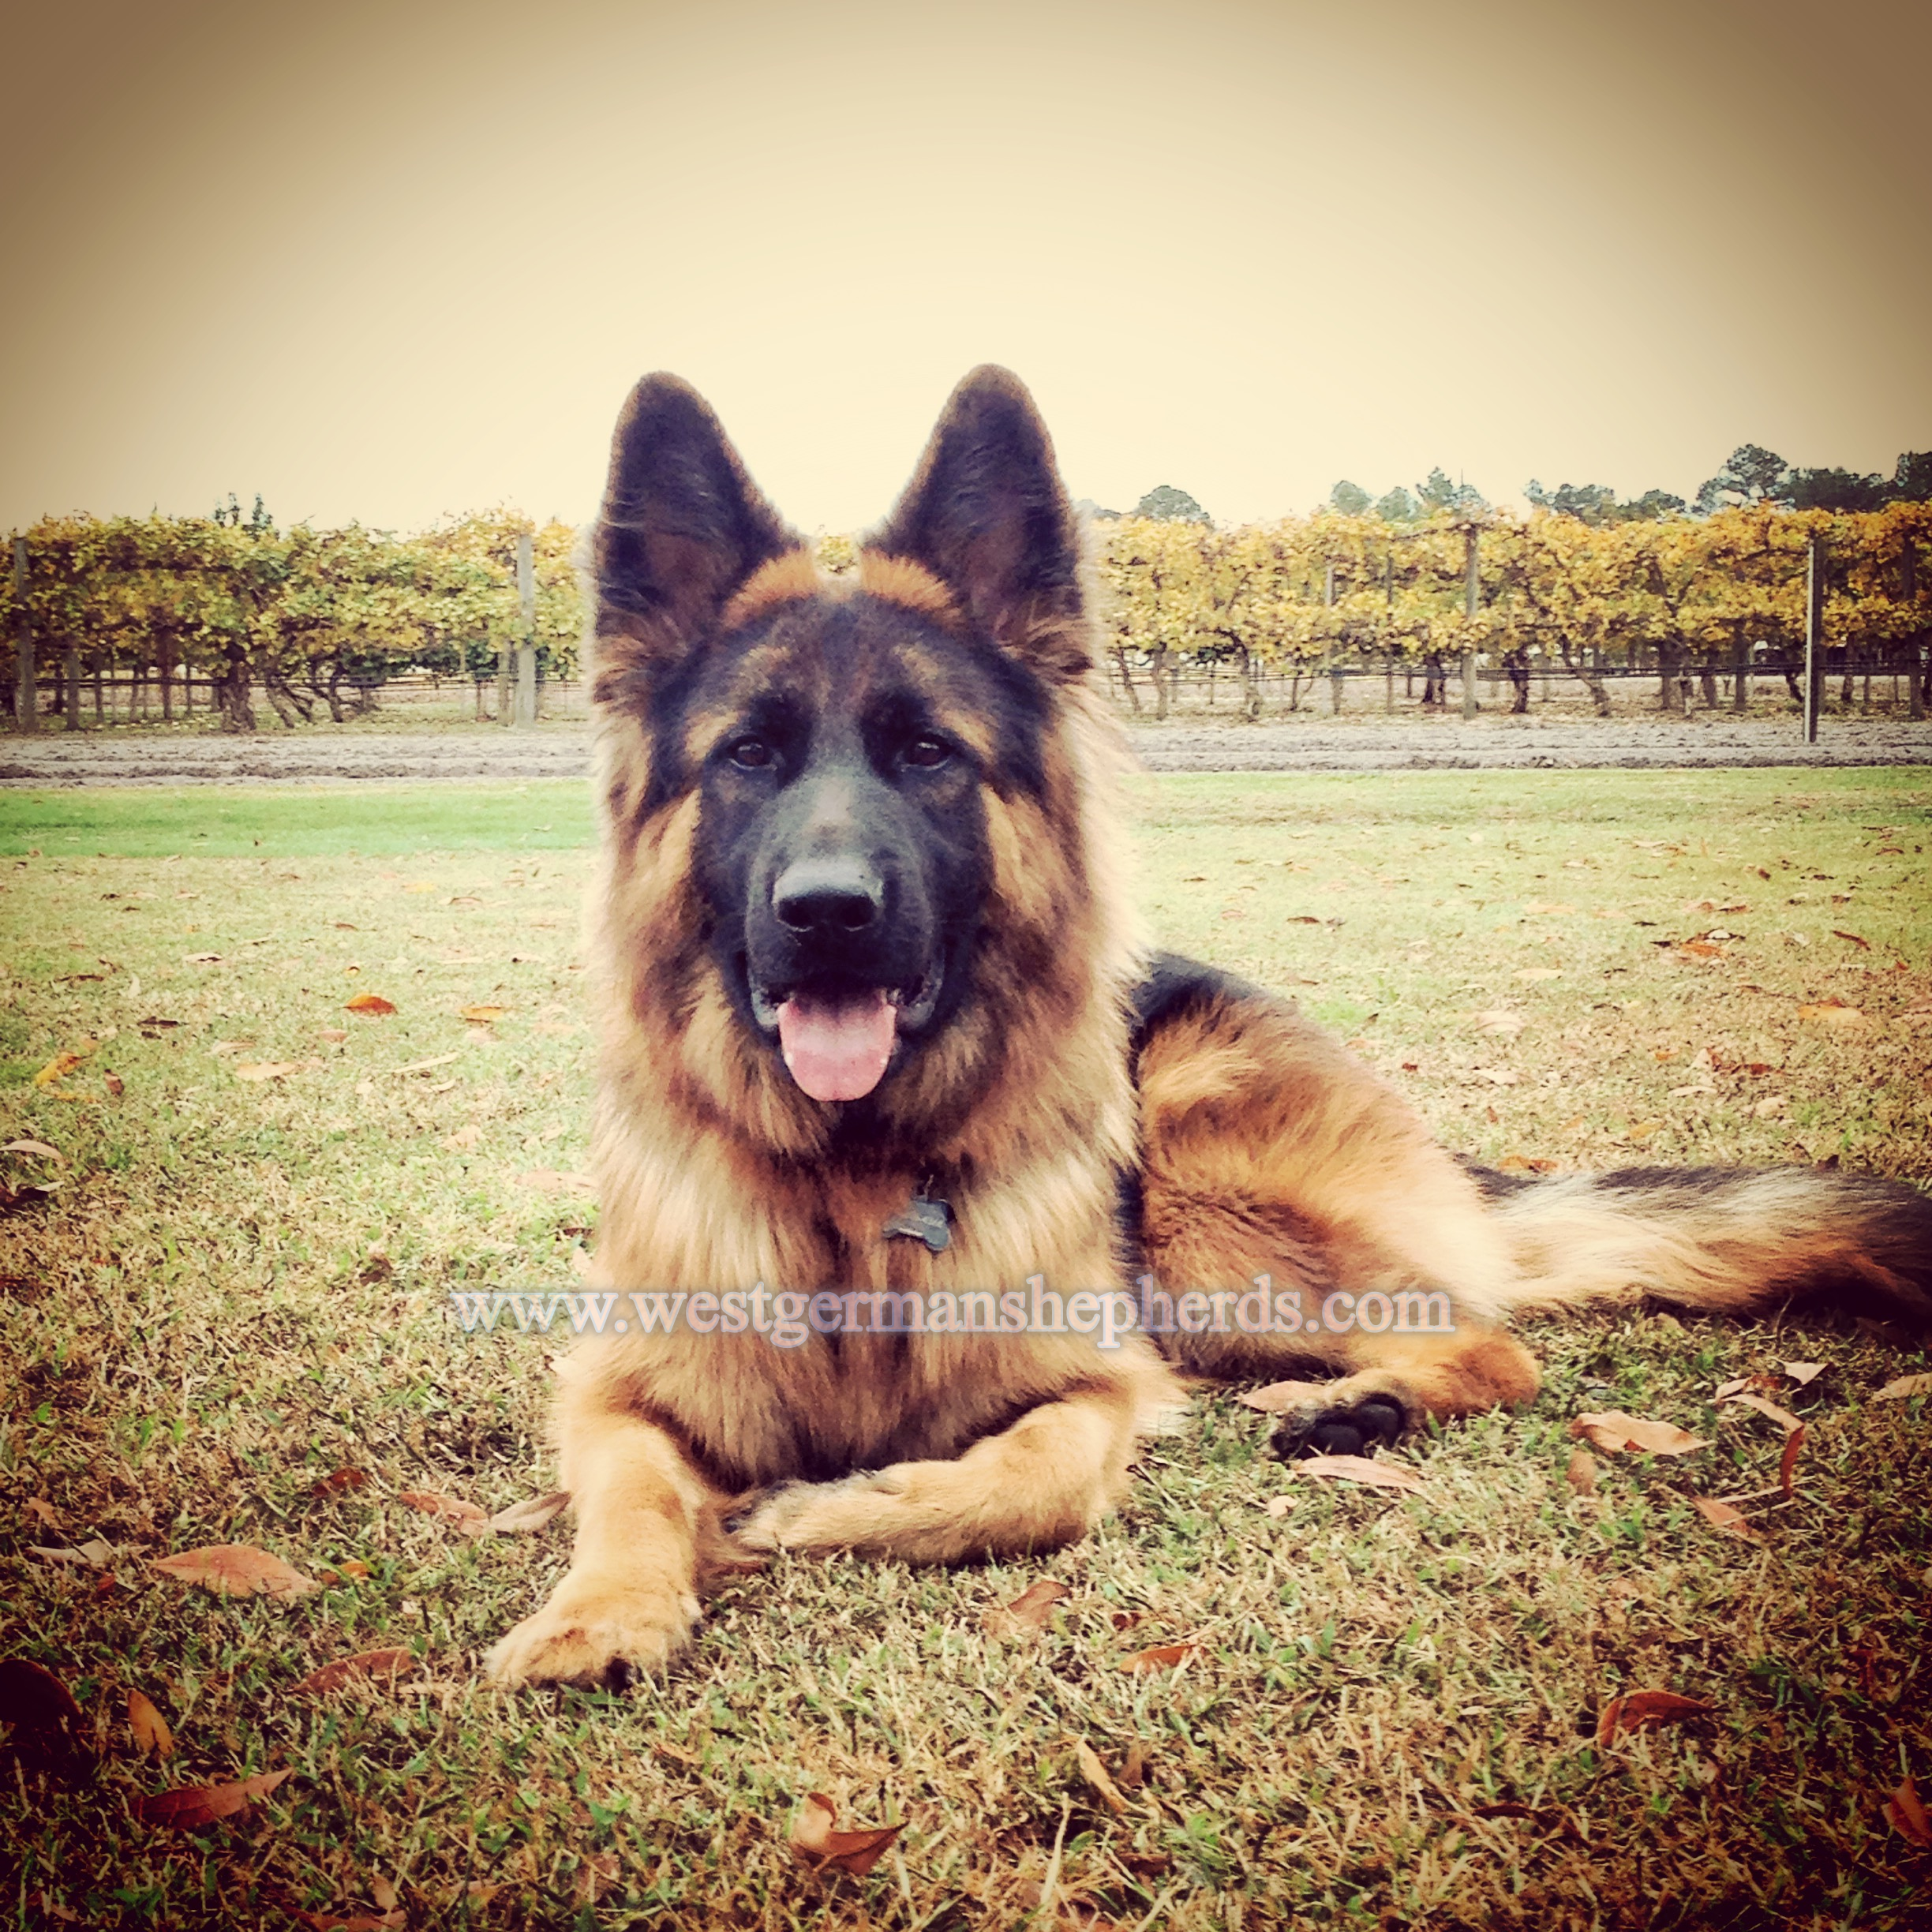 waylon holds a down command while touring a vineyard